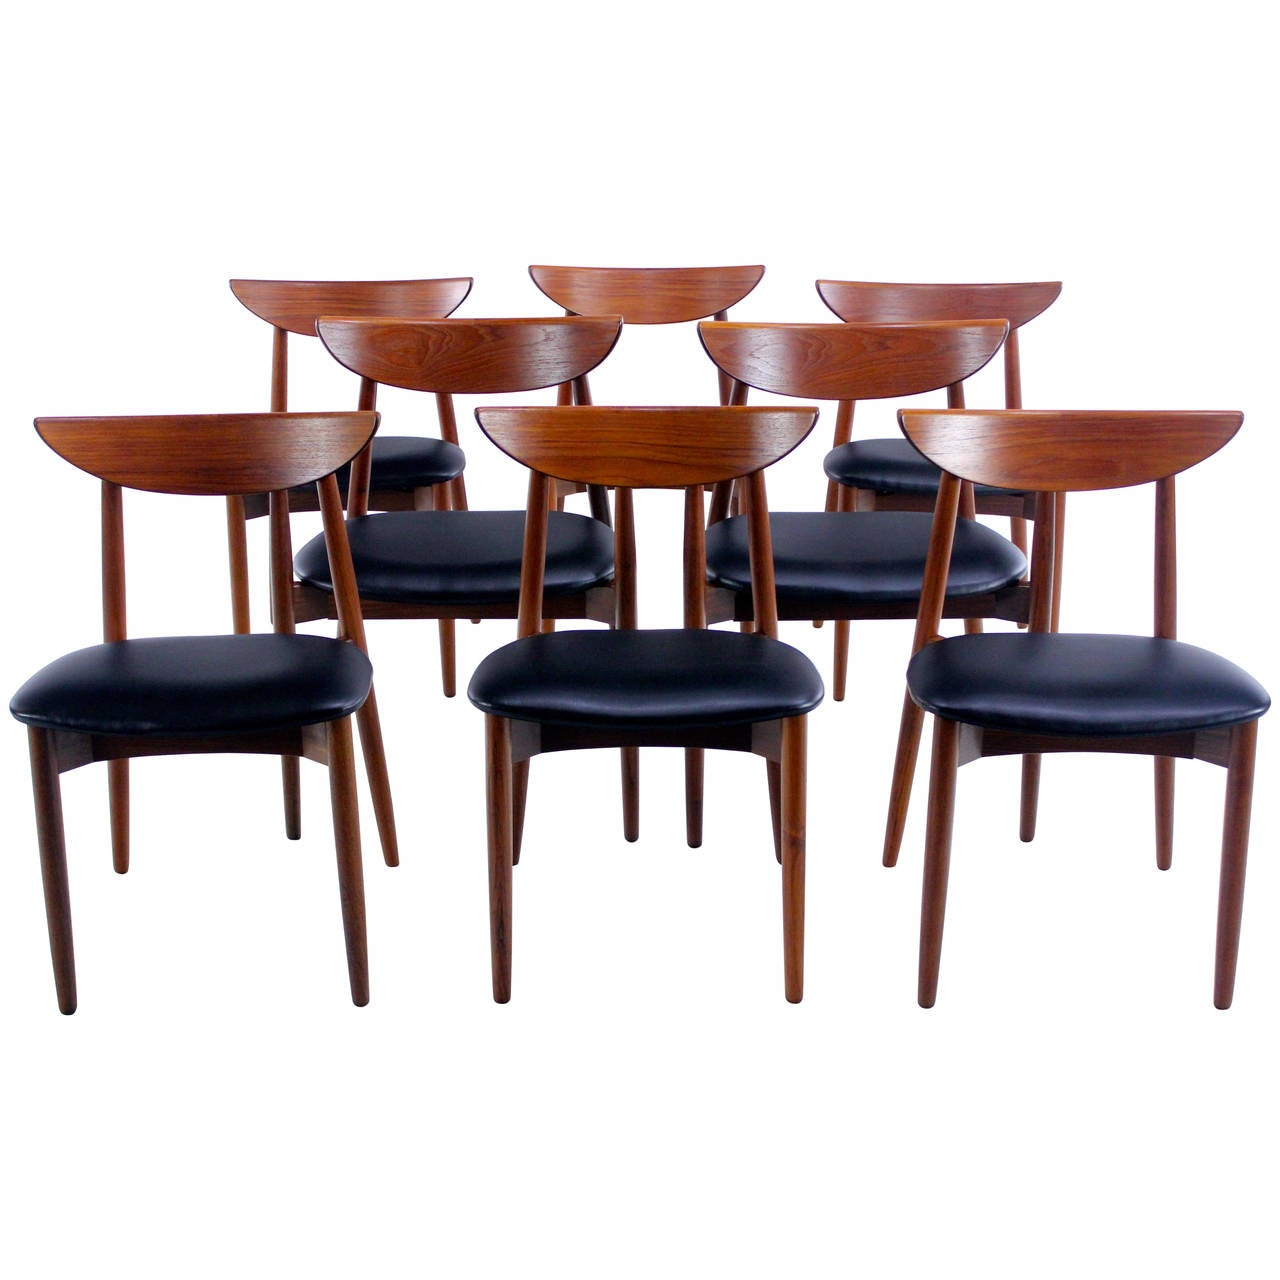 set of eight danish modern teak dining chairs designed by